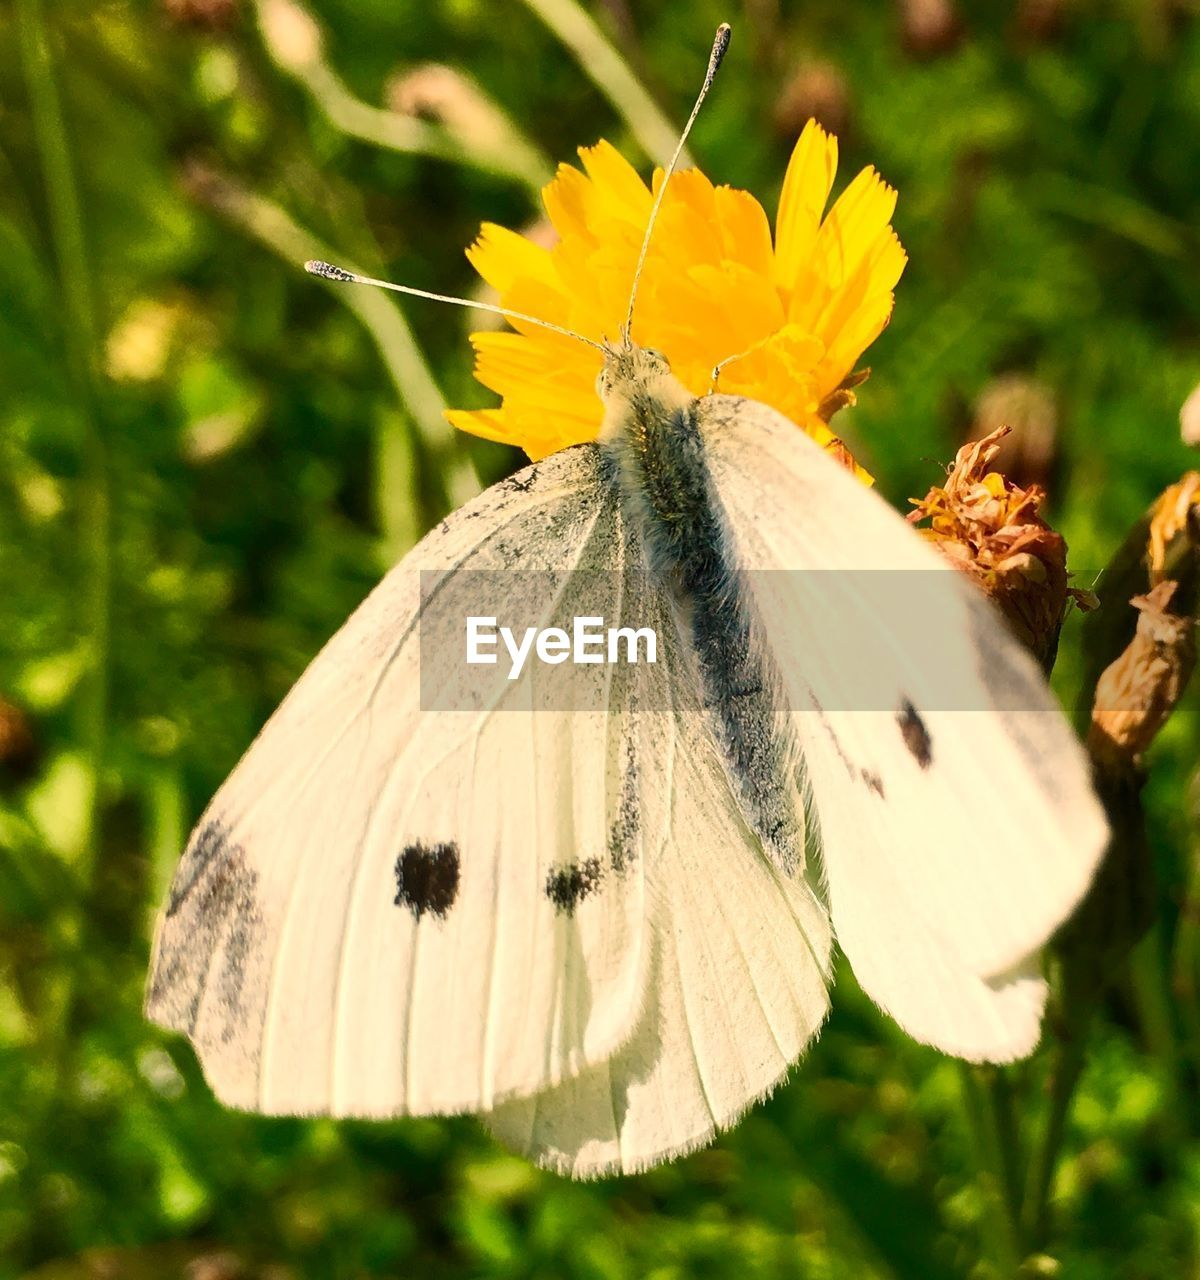 insect, one animal, animal themes, animals in the wild, butterfly - insect, close-up, nature, butterfly, no people, animal wildlife, yellow, fragility, flower, outdoors, plant, beauty in nature, day, flower head, freshness